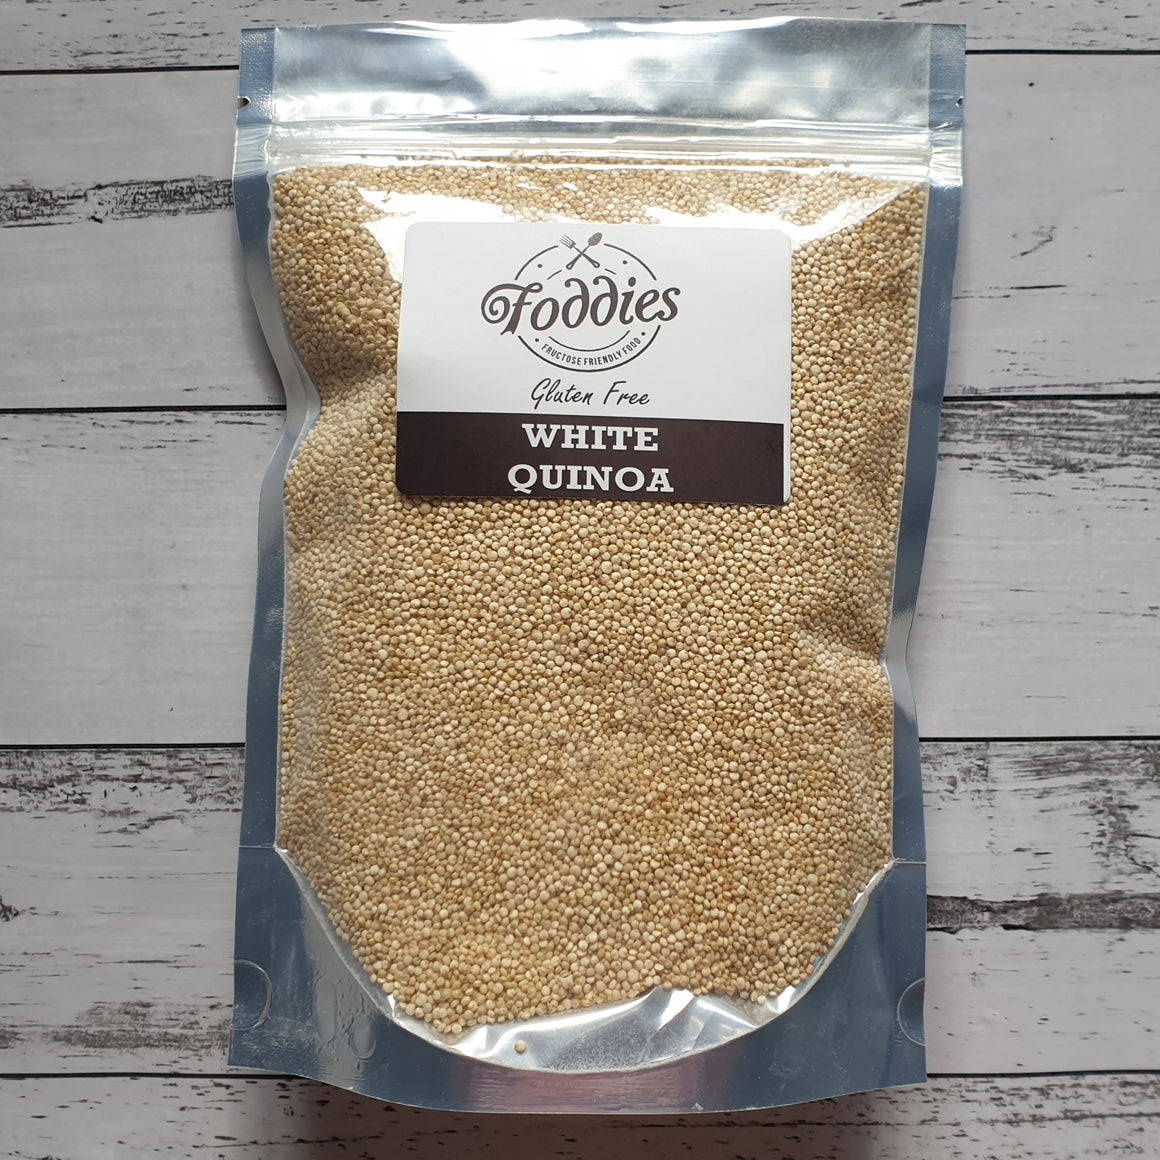 White Quinoa - Foddies Low FODMAP